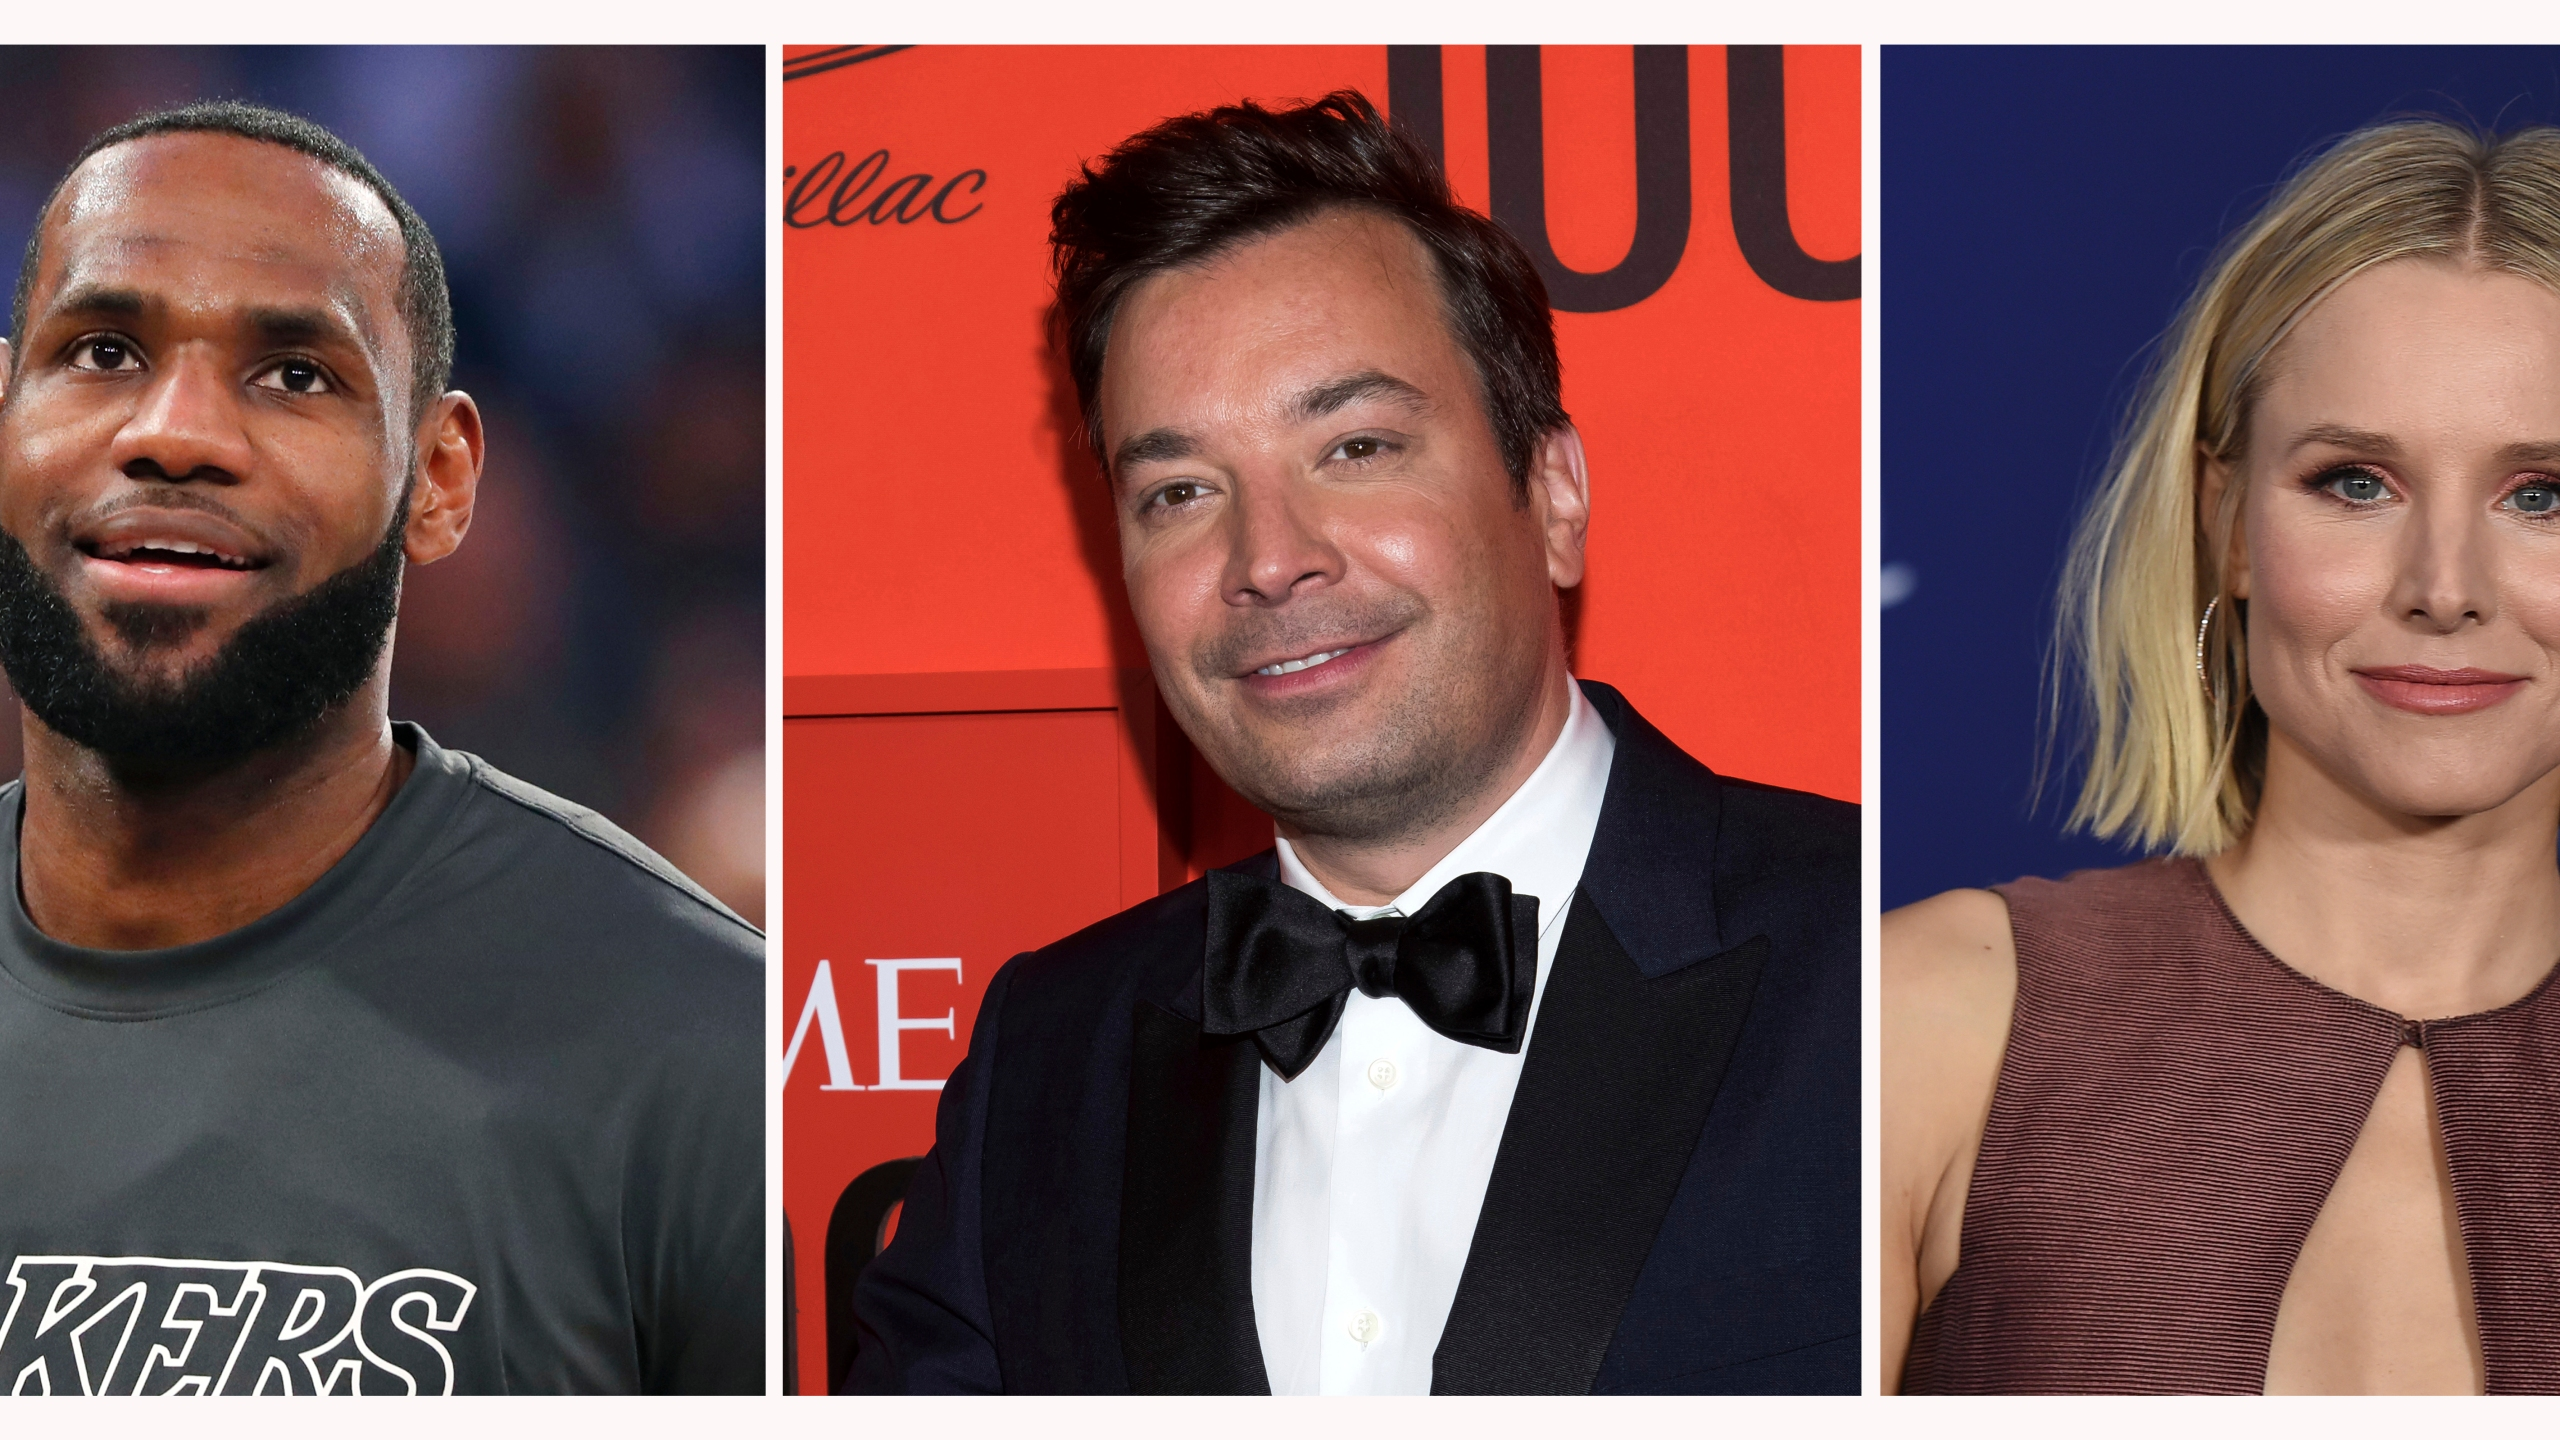 LeBron James, Jimmy Fallon, Kristen Bell